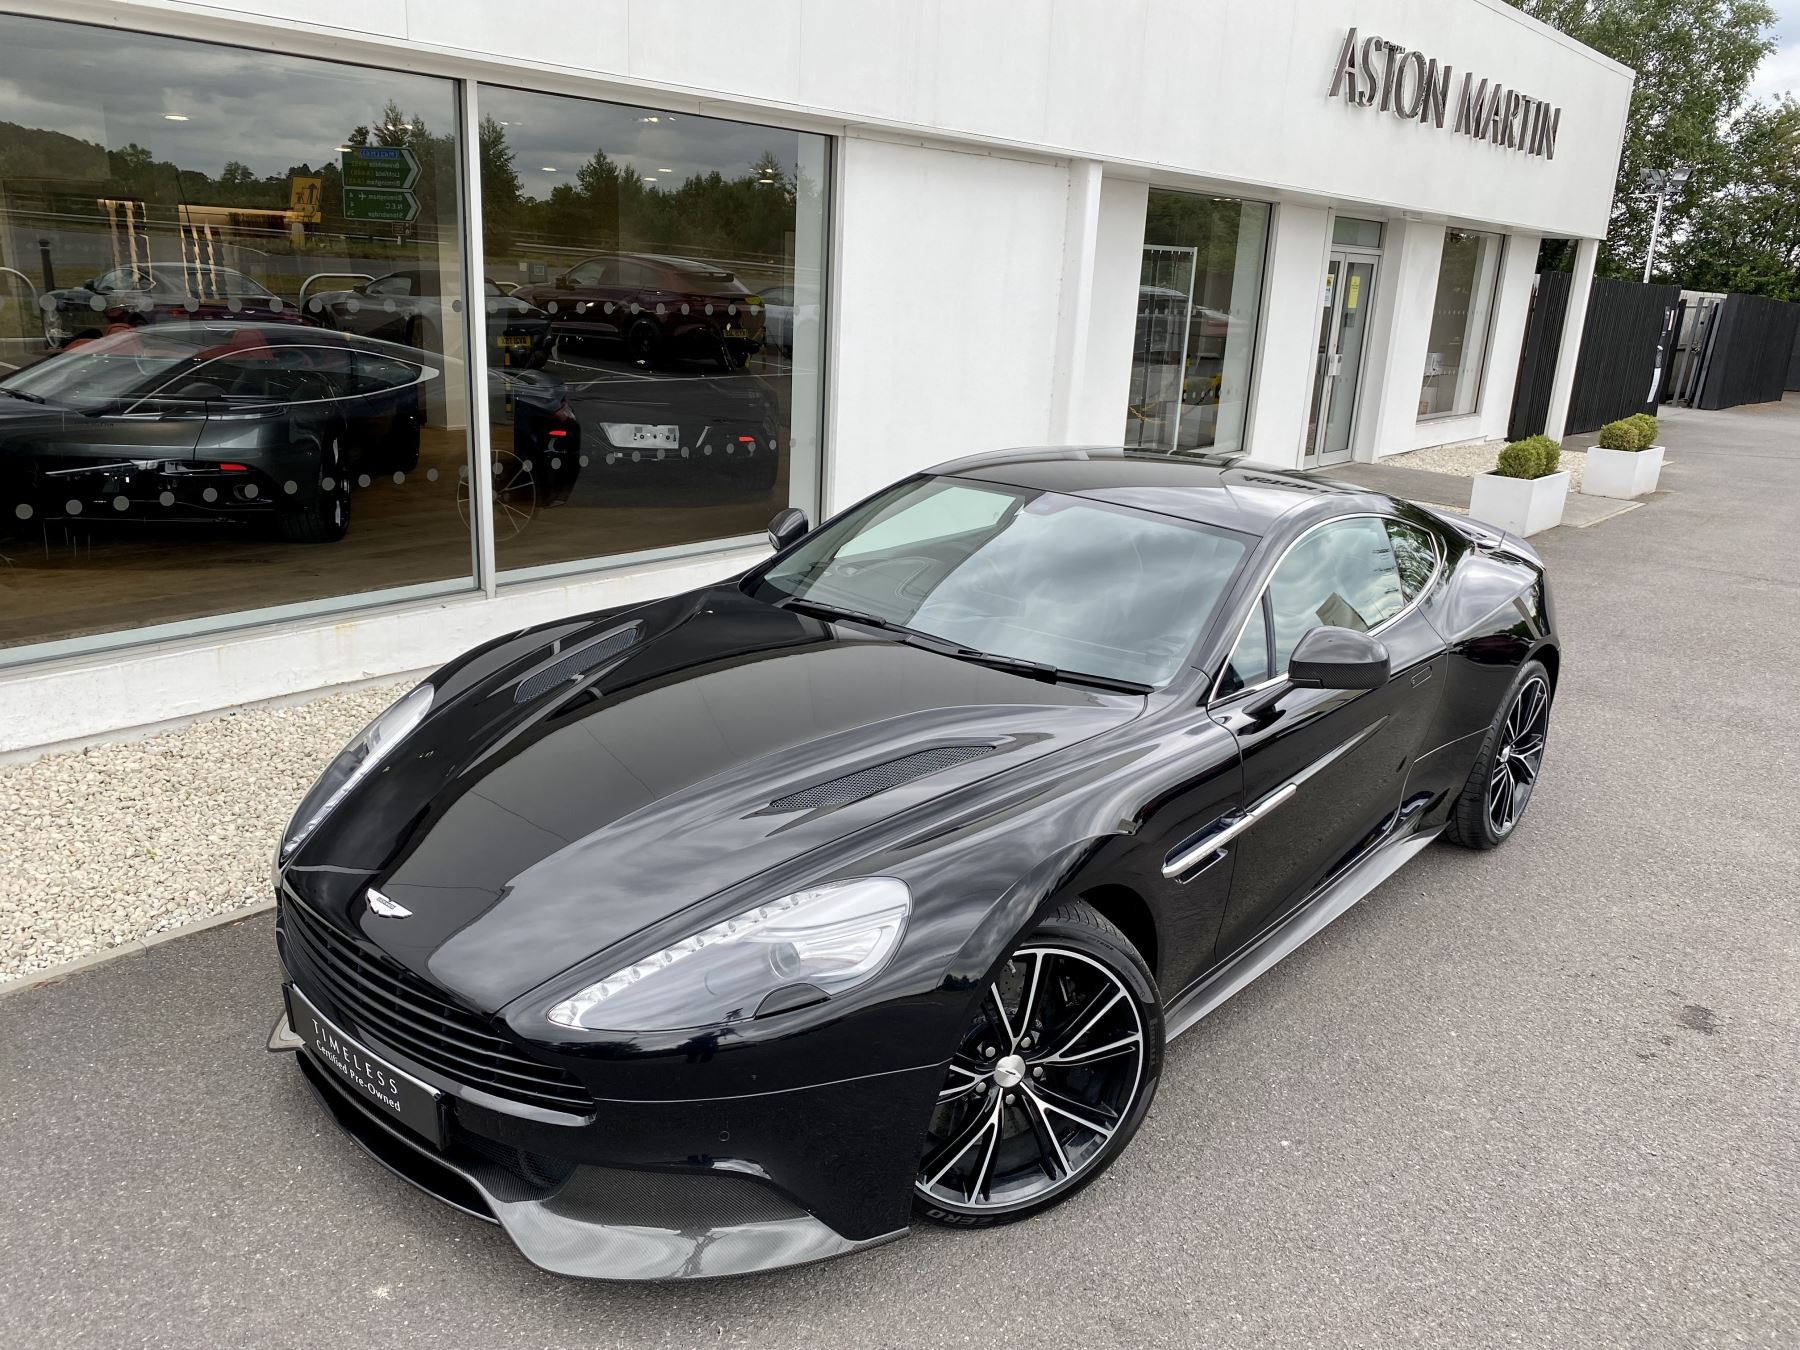 Aston Martin Vanquish V12 [568] 2+2 2dr Touchtronic 3 8 Speed, 2 Owners From New, Onyx Black, Bang And Olufsen. image 10